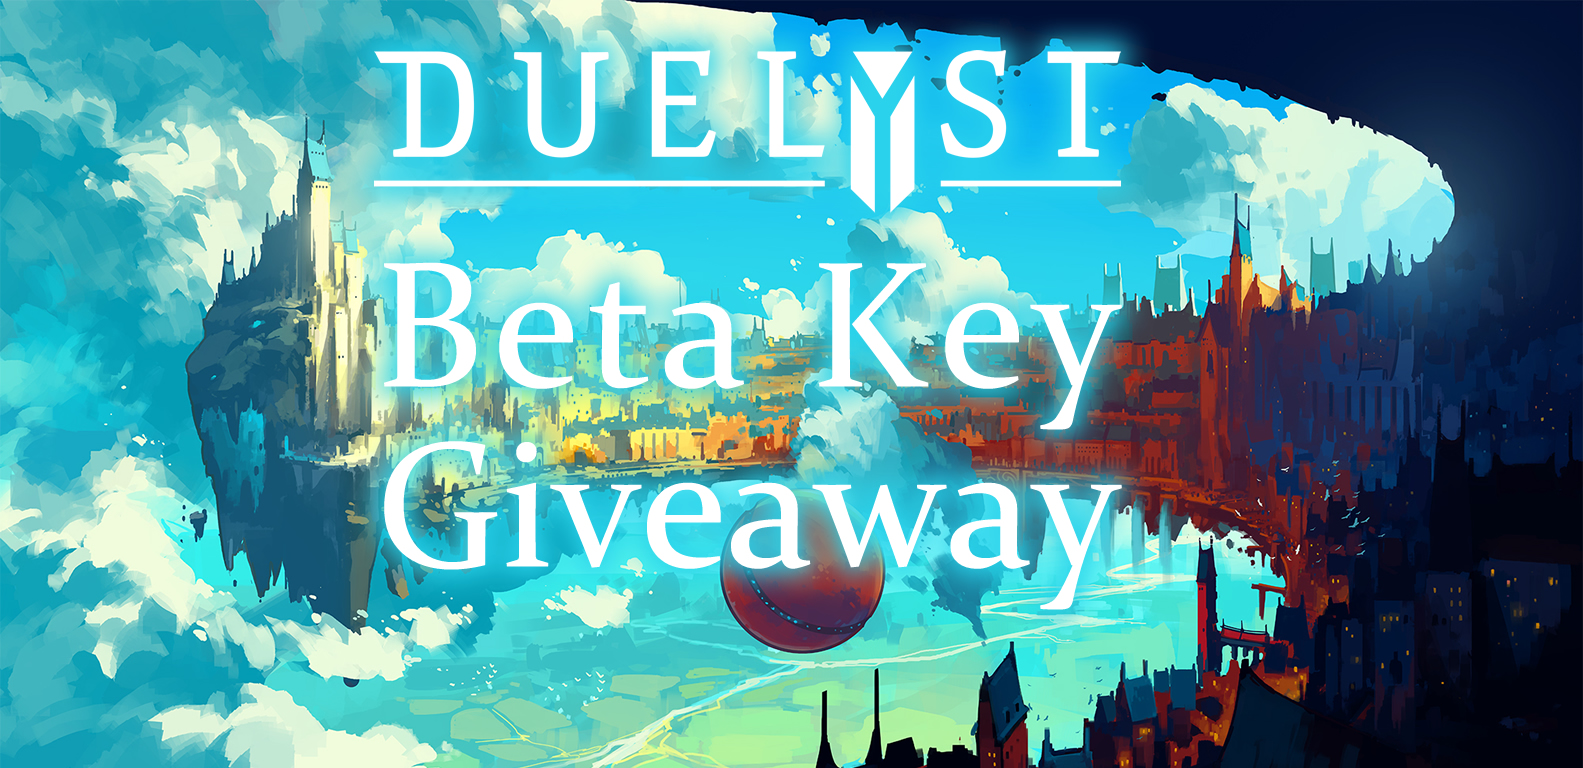 Duelyst Beta Key Giveaway